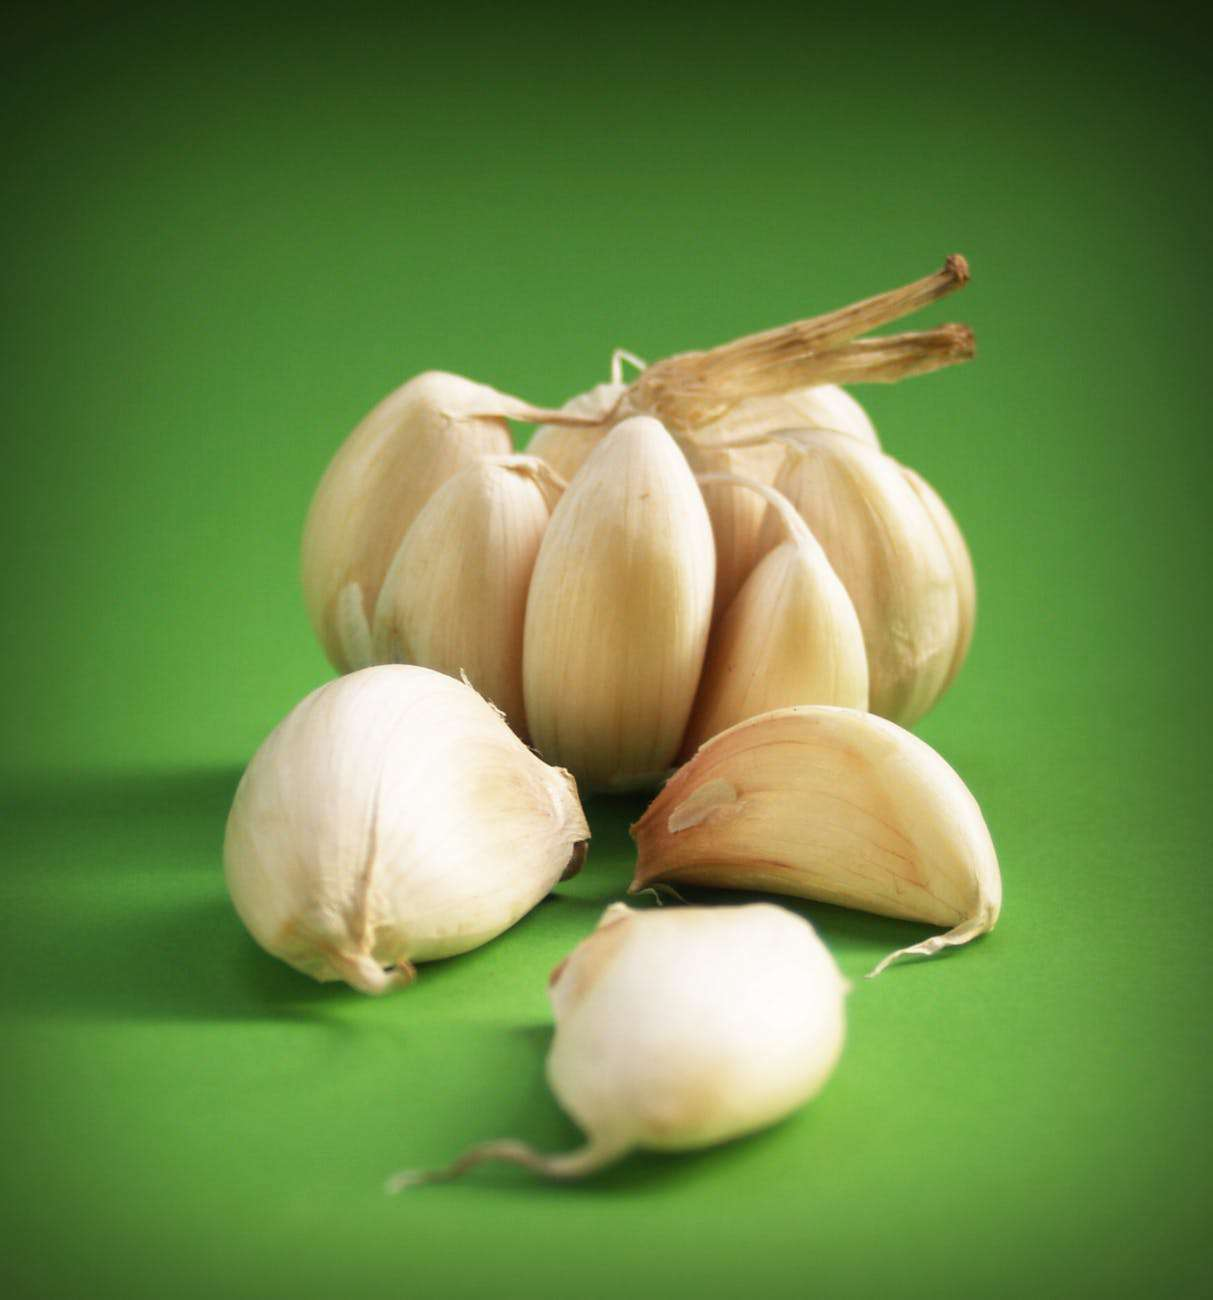 Garlic Tip For Pimples 50 Beauty Tips For Face Pimples Naturally Remove